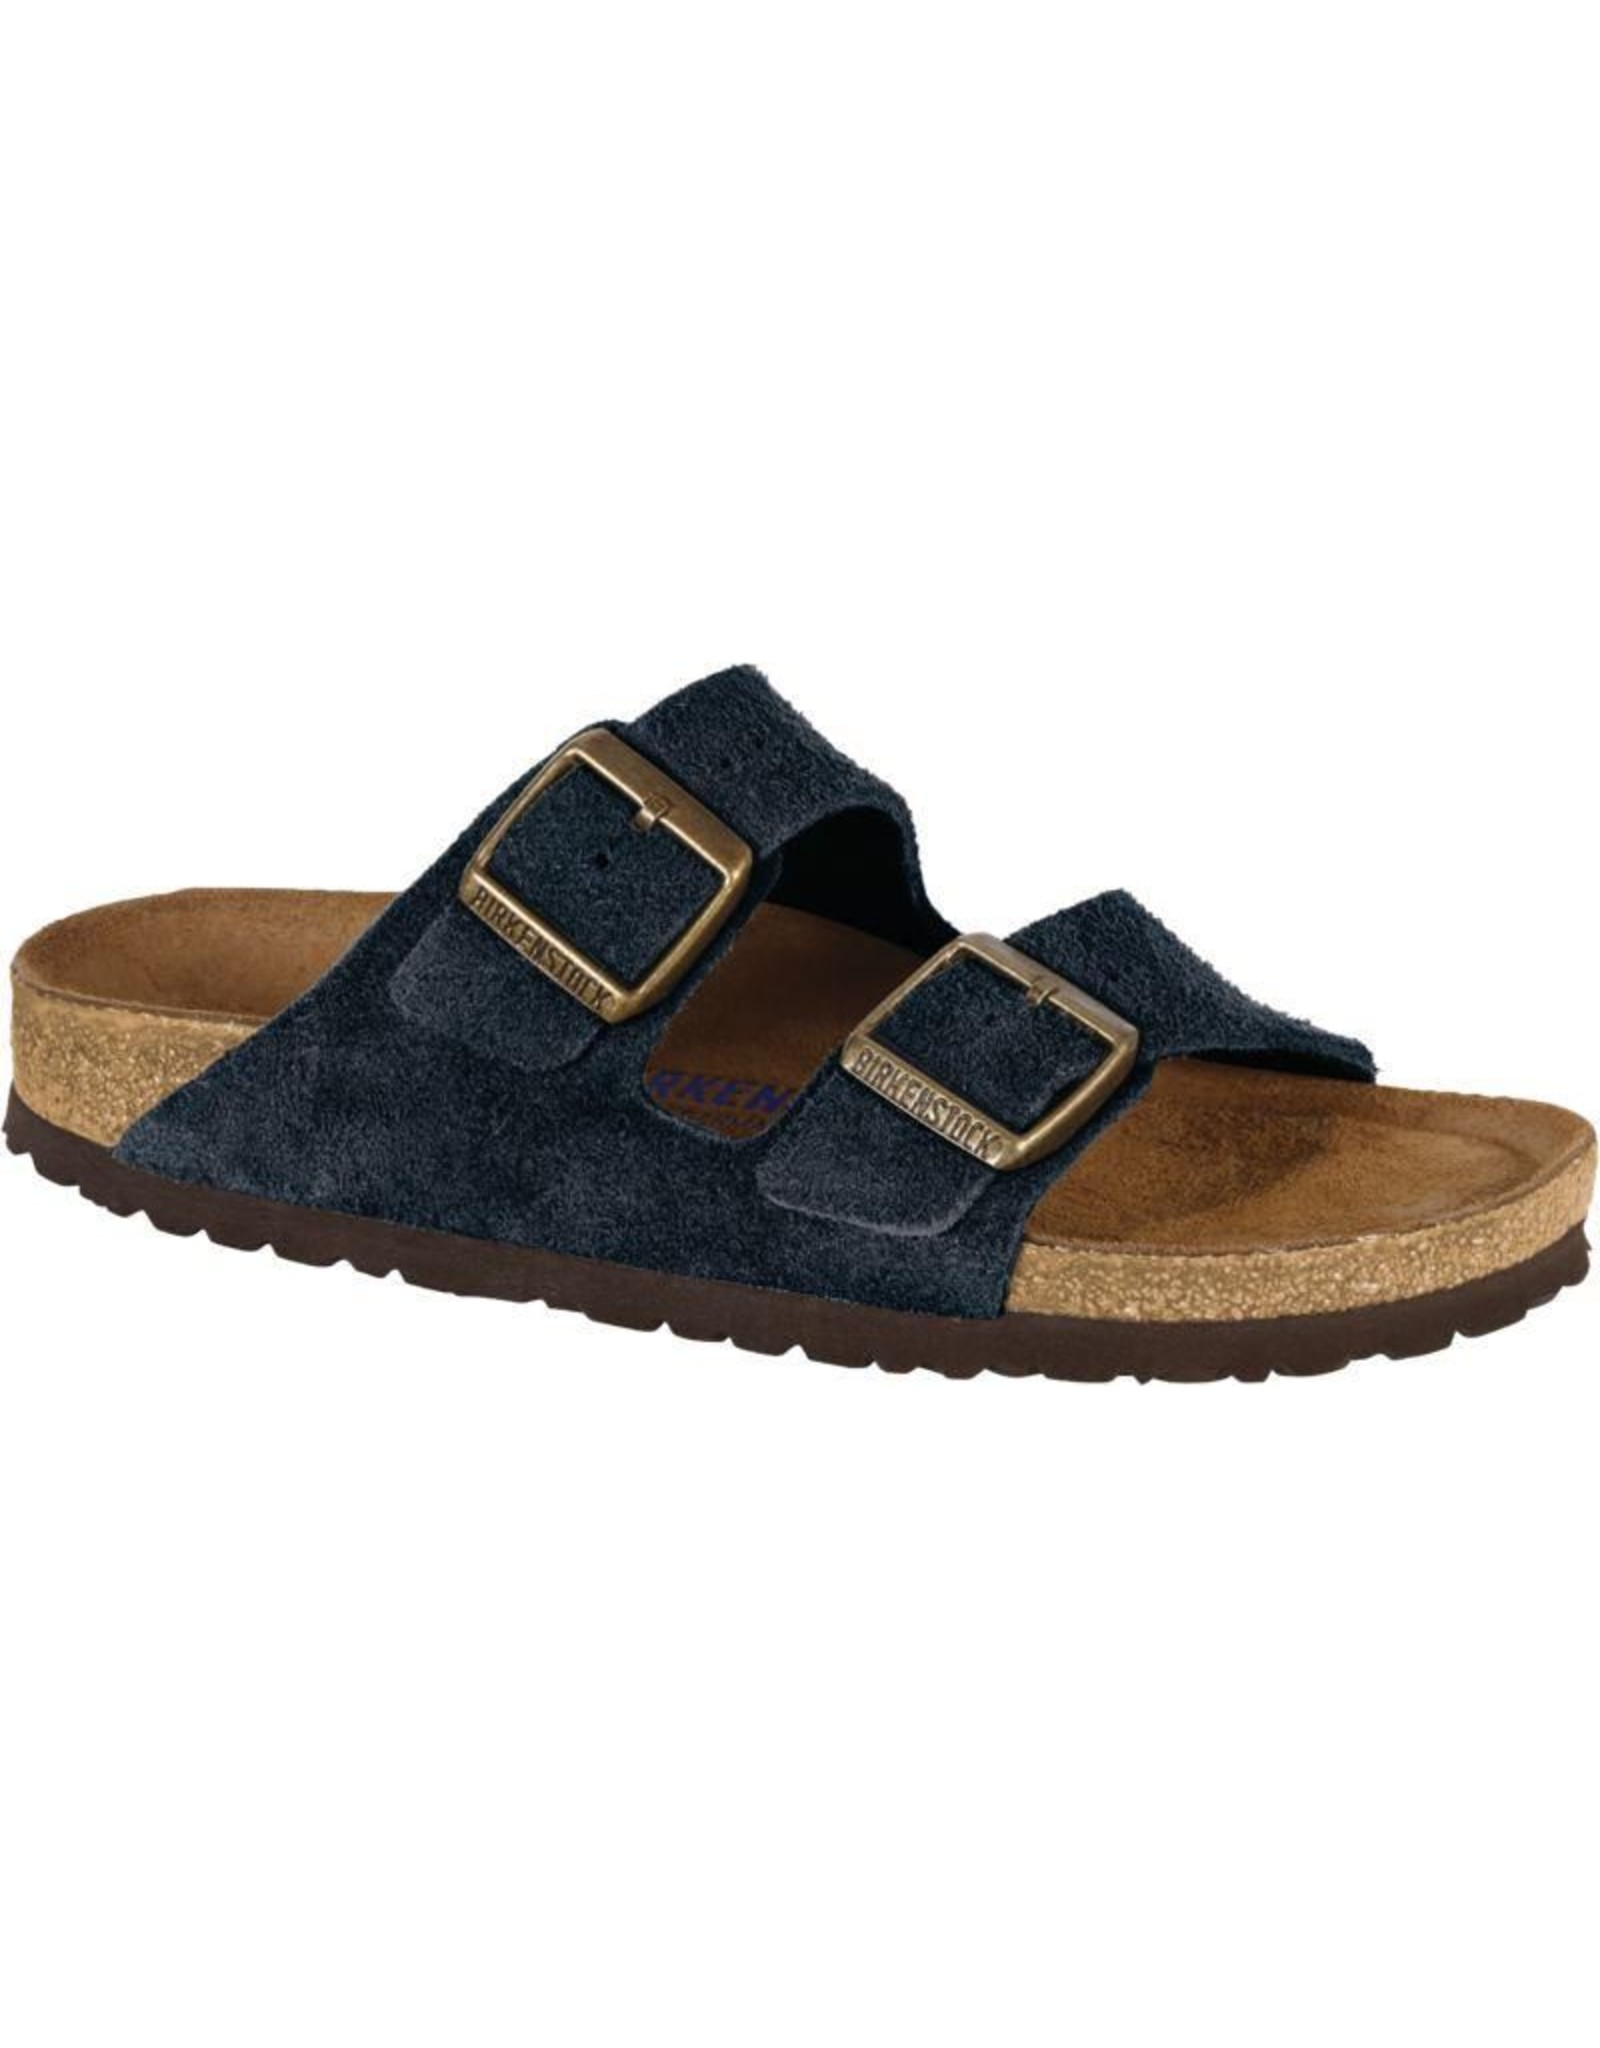 Birkenstock Arizona Soft Footbed Navy Suede Leather